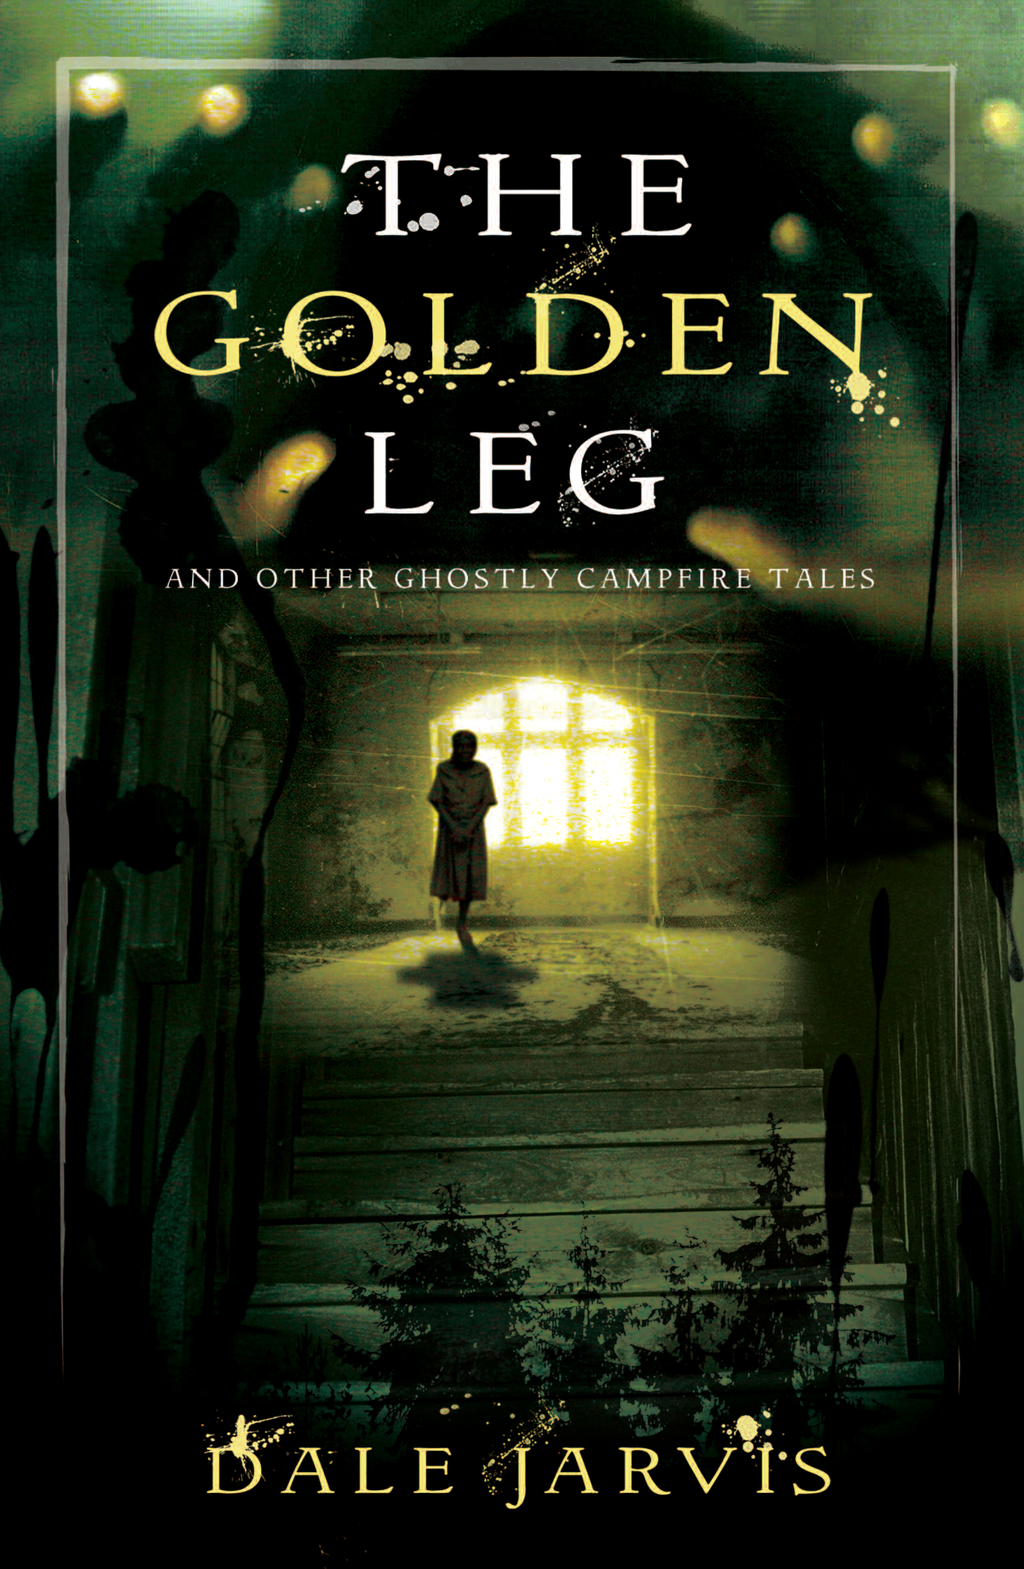 The Golden Leg: And Other Ghostly Campfire Tales